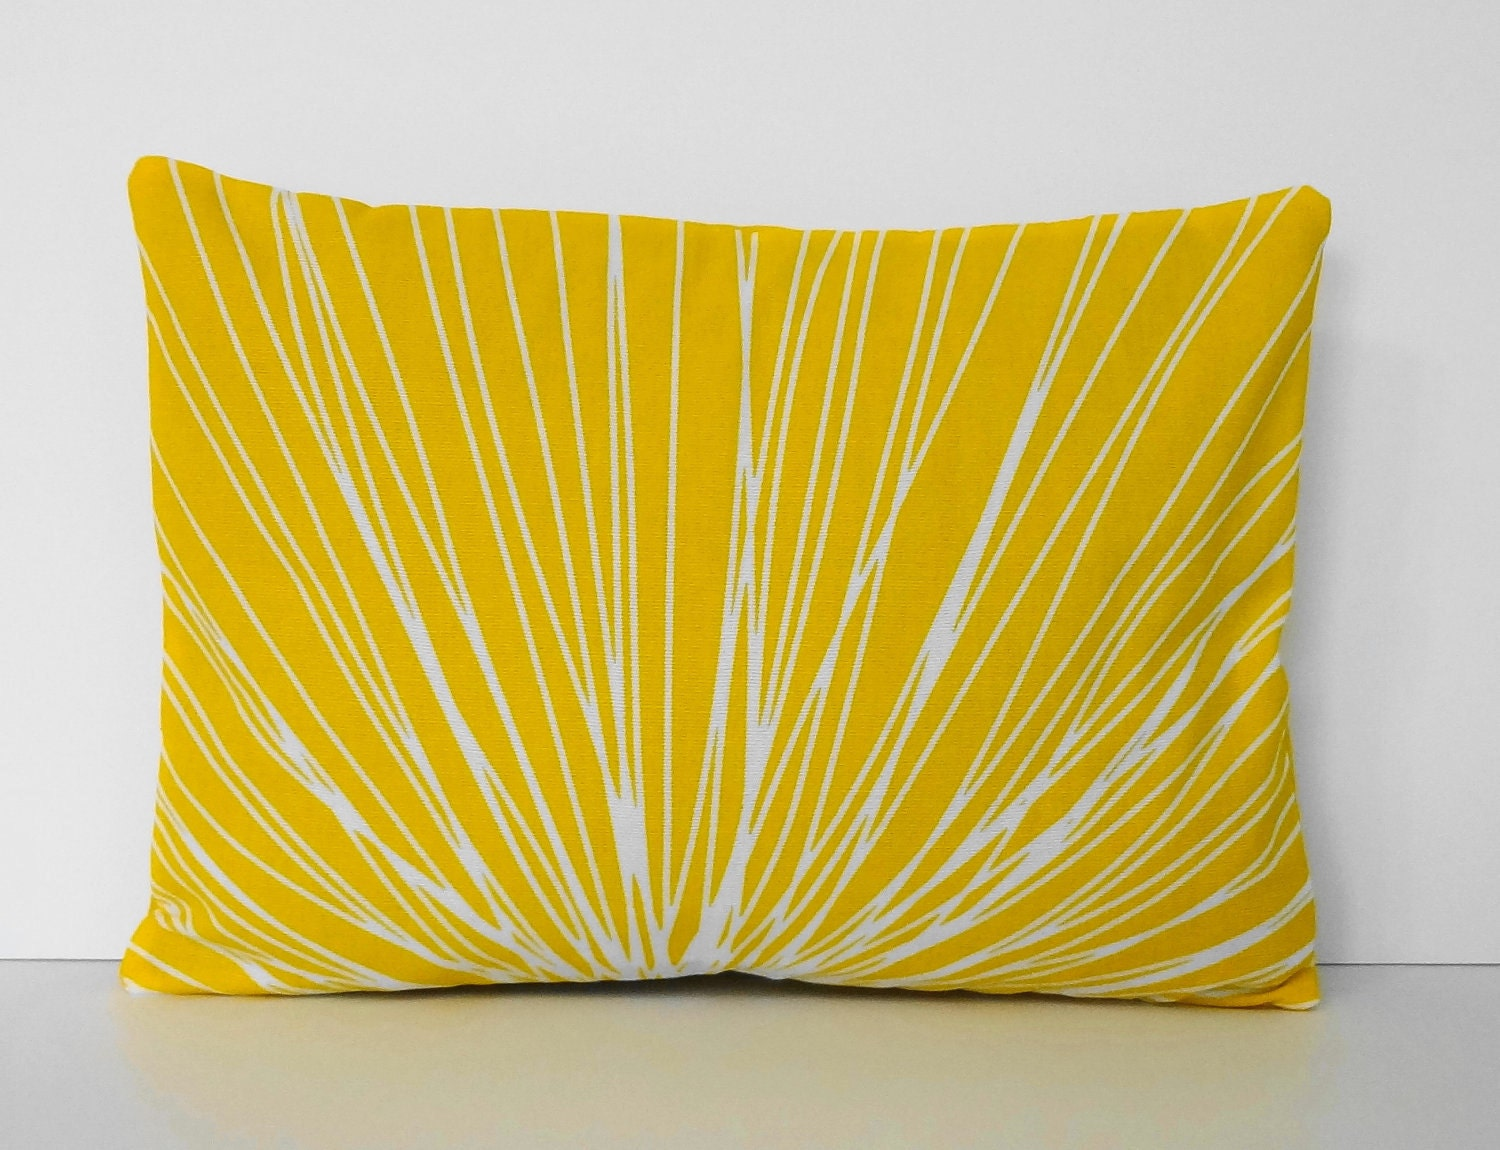 Throw Pillow Yellow : Starburst Yellow Lumbar Pillow Cover Decorative Throw Pillow